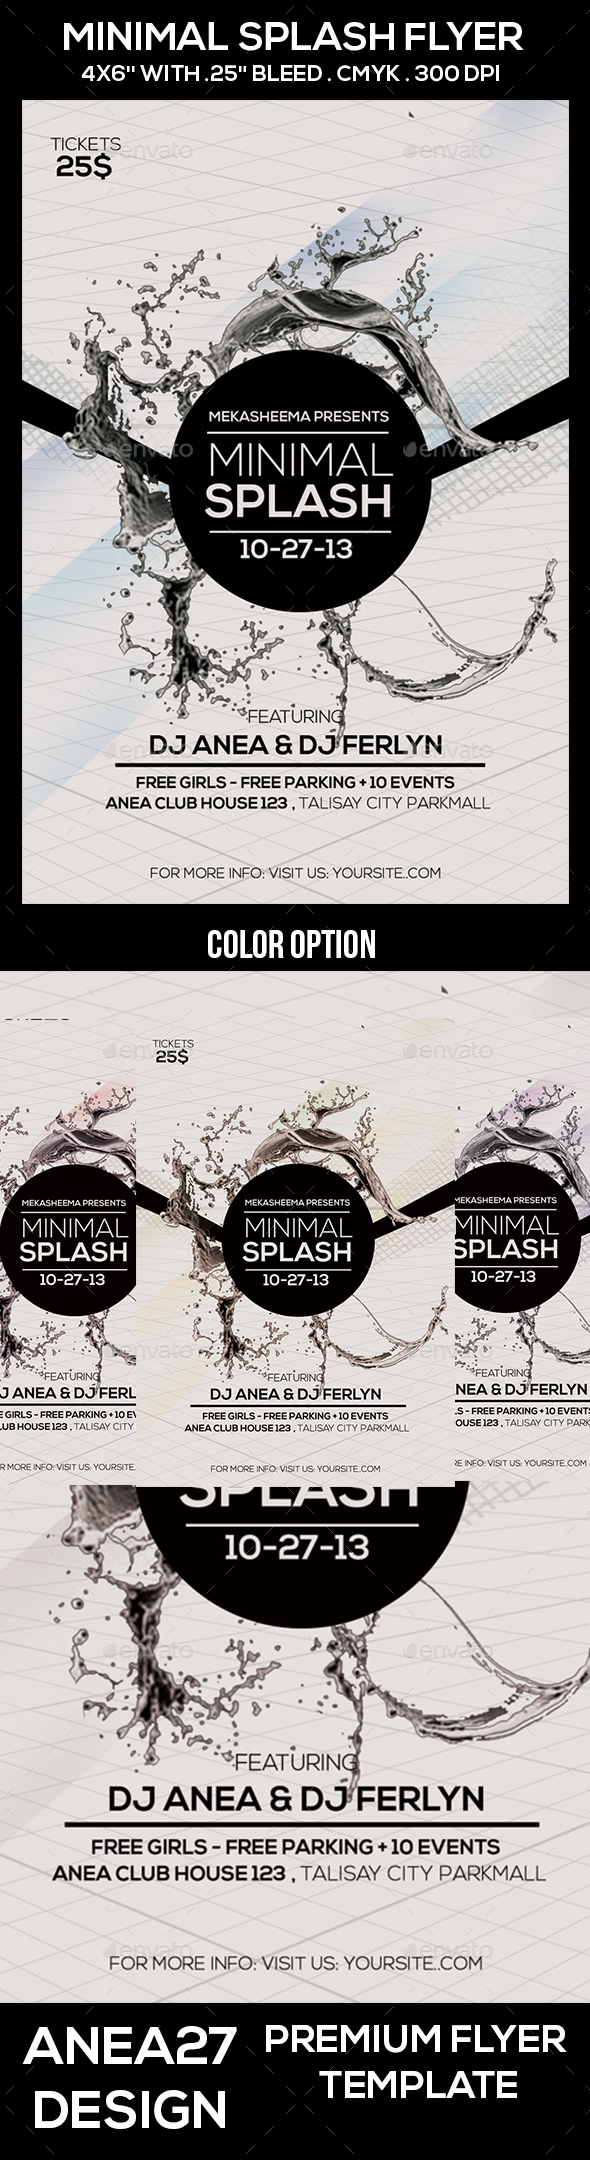 Minimal Splash Flyer - Clubs & Parties Events